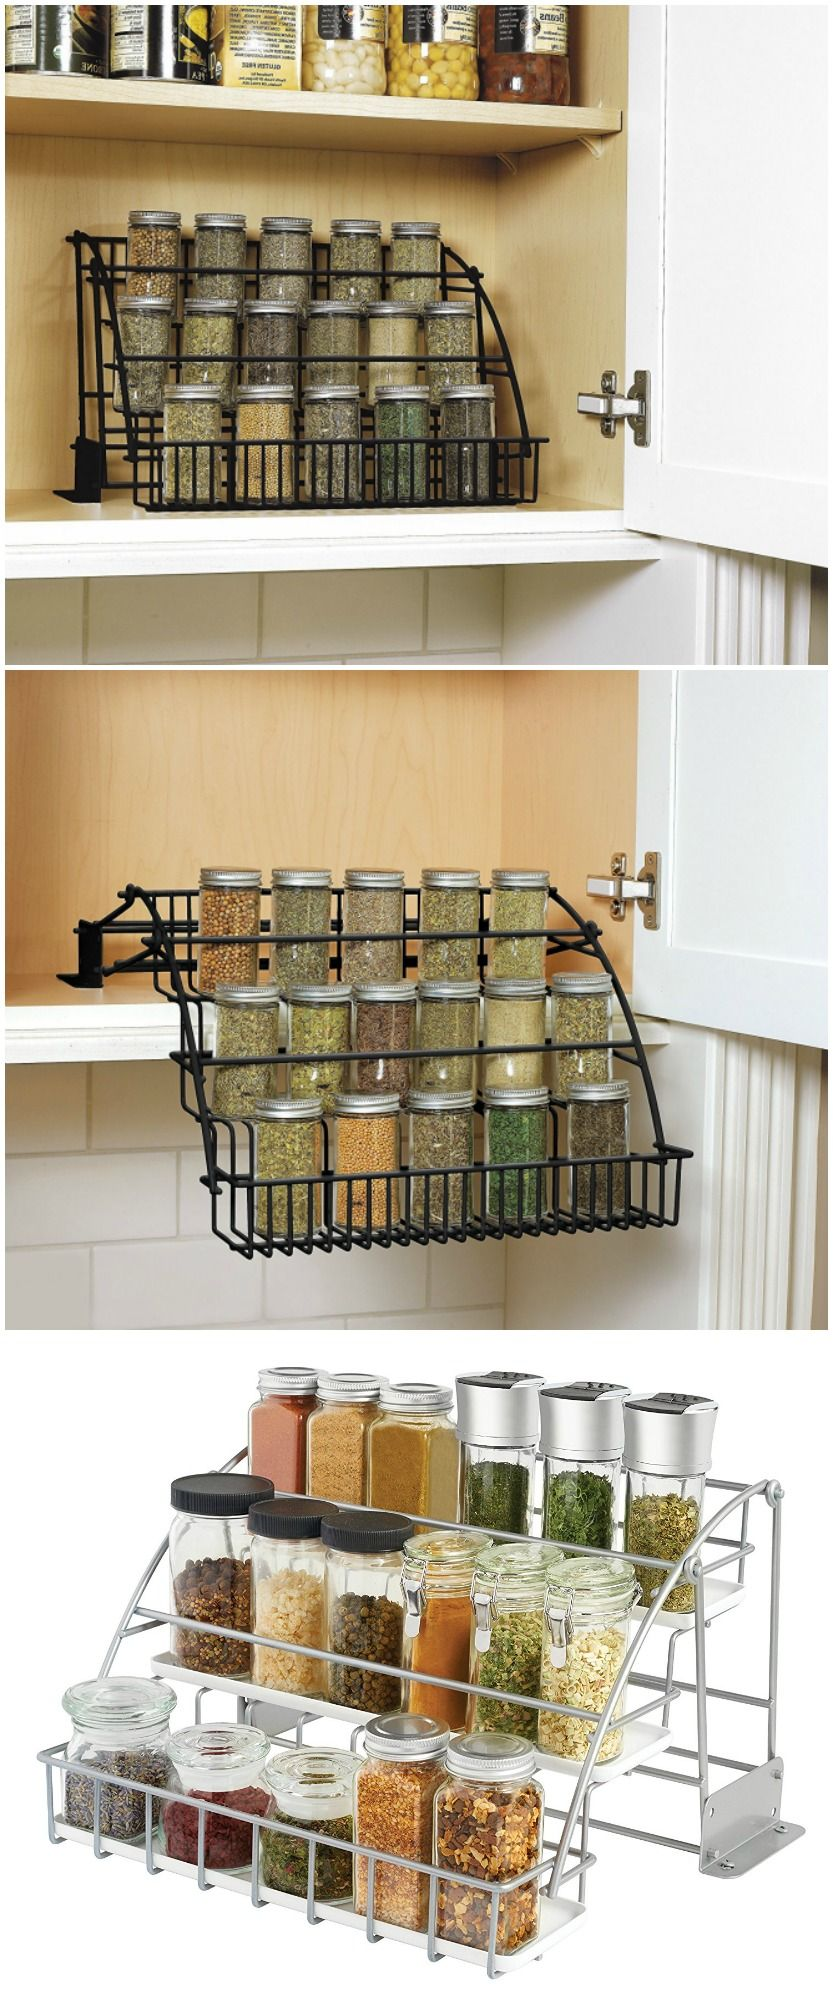 Under cabinet plate rack plans free - 20 Spice Rack Ideas For Both Roomy And Cramped Kitchen